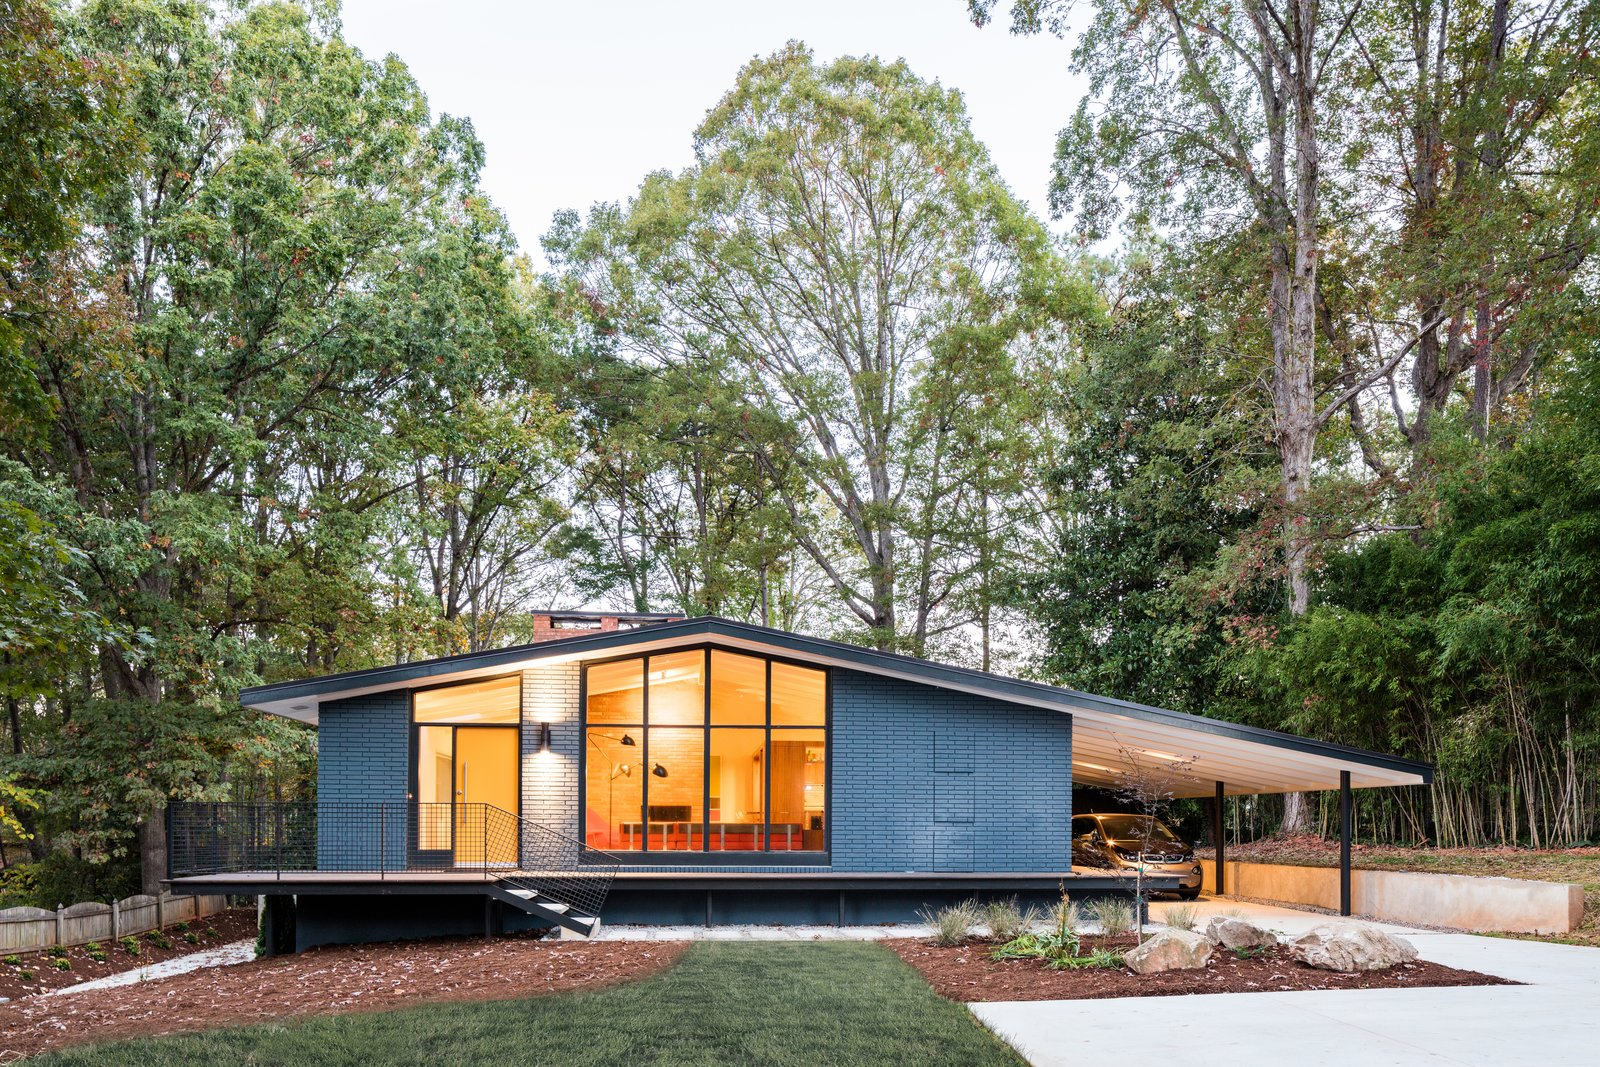 Articles about three sisters renovate their parents midcentury home on Dwell.com